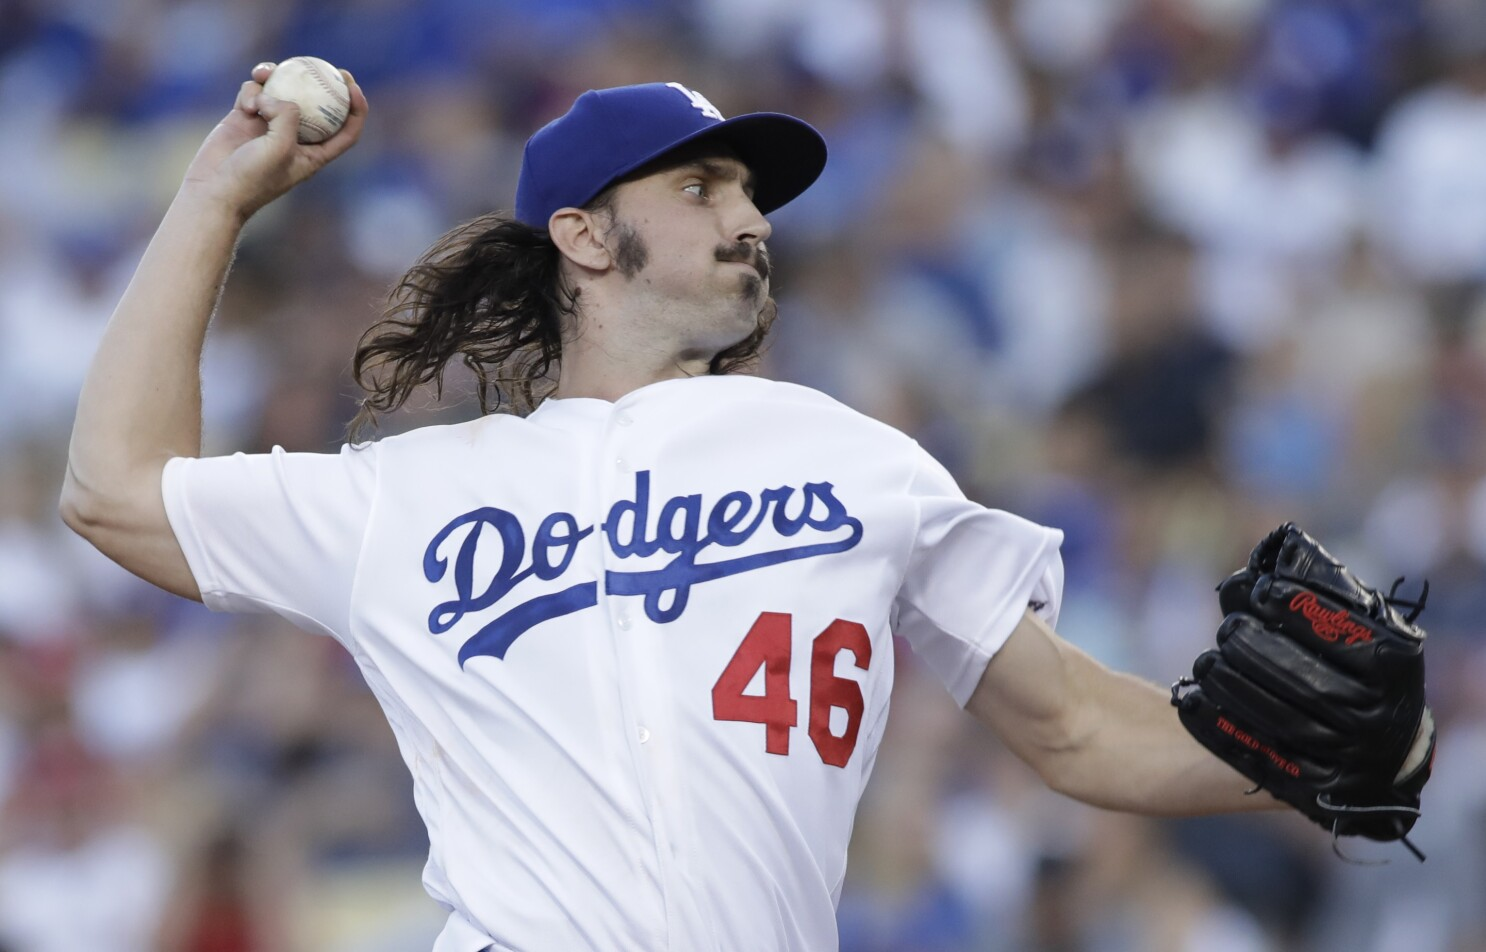 daf6d79d Tony Gonsolin aces his Dodger Stadium debut in victory - Los Angeles ...